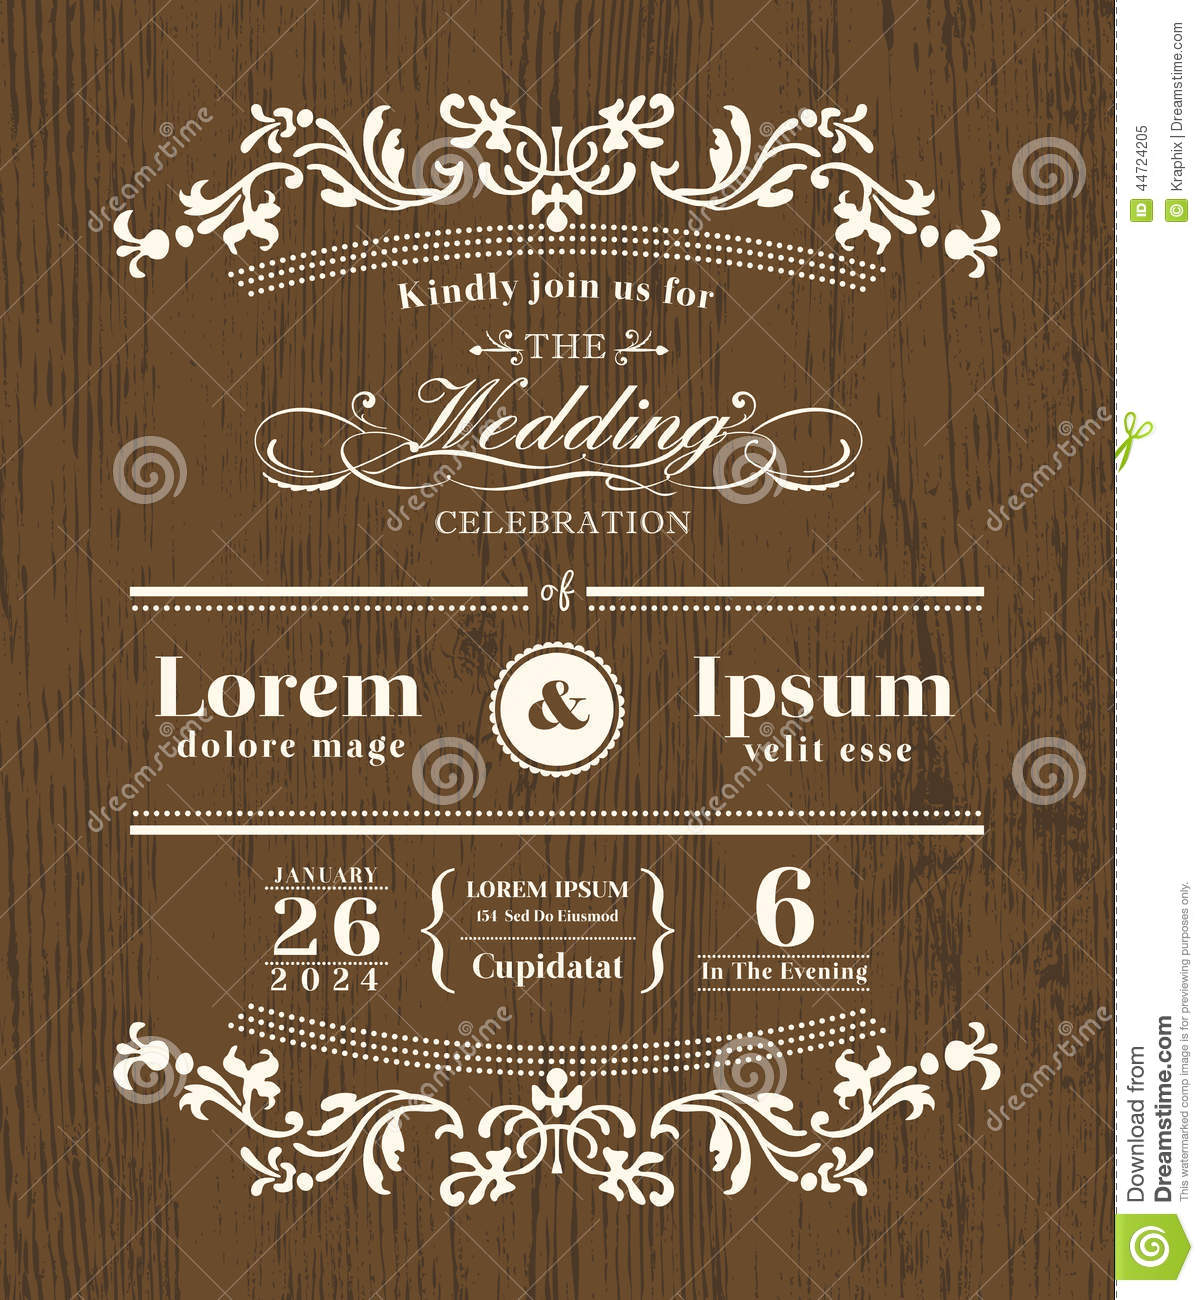 Vintage Typography Wedding Invitation Design Stock Vector